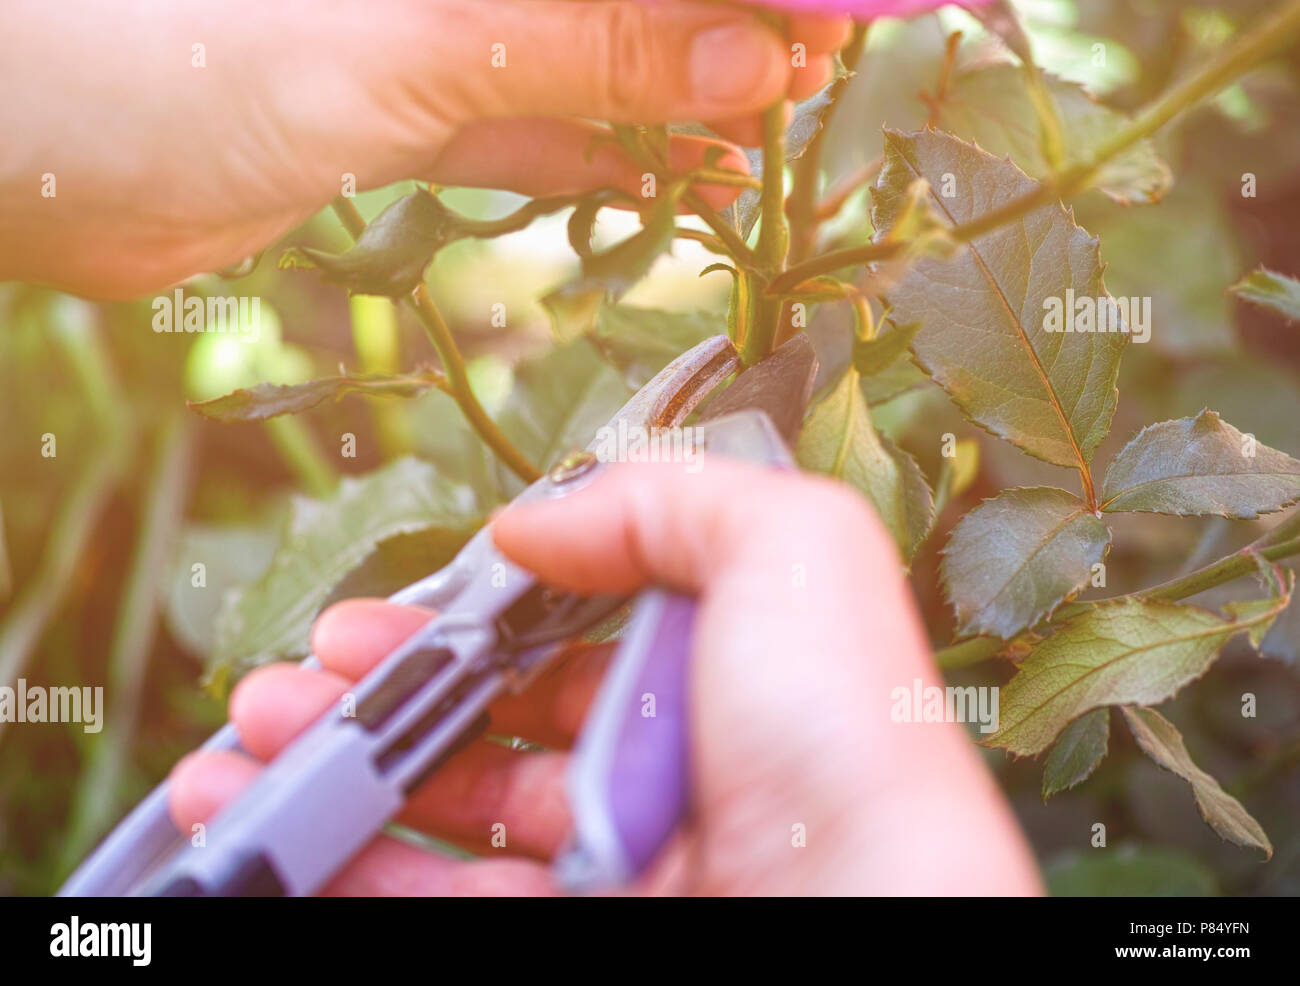 Woman hands with gardening shears cutting rose bush. - Stock Image